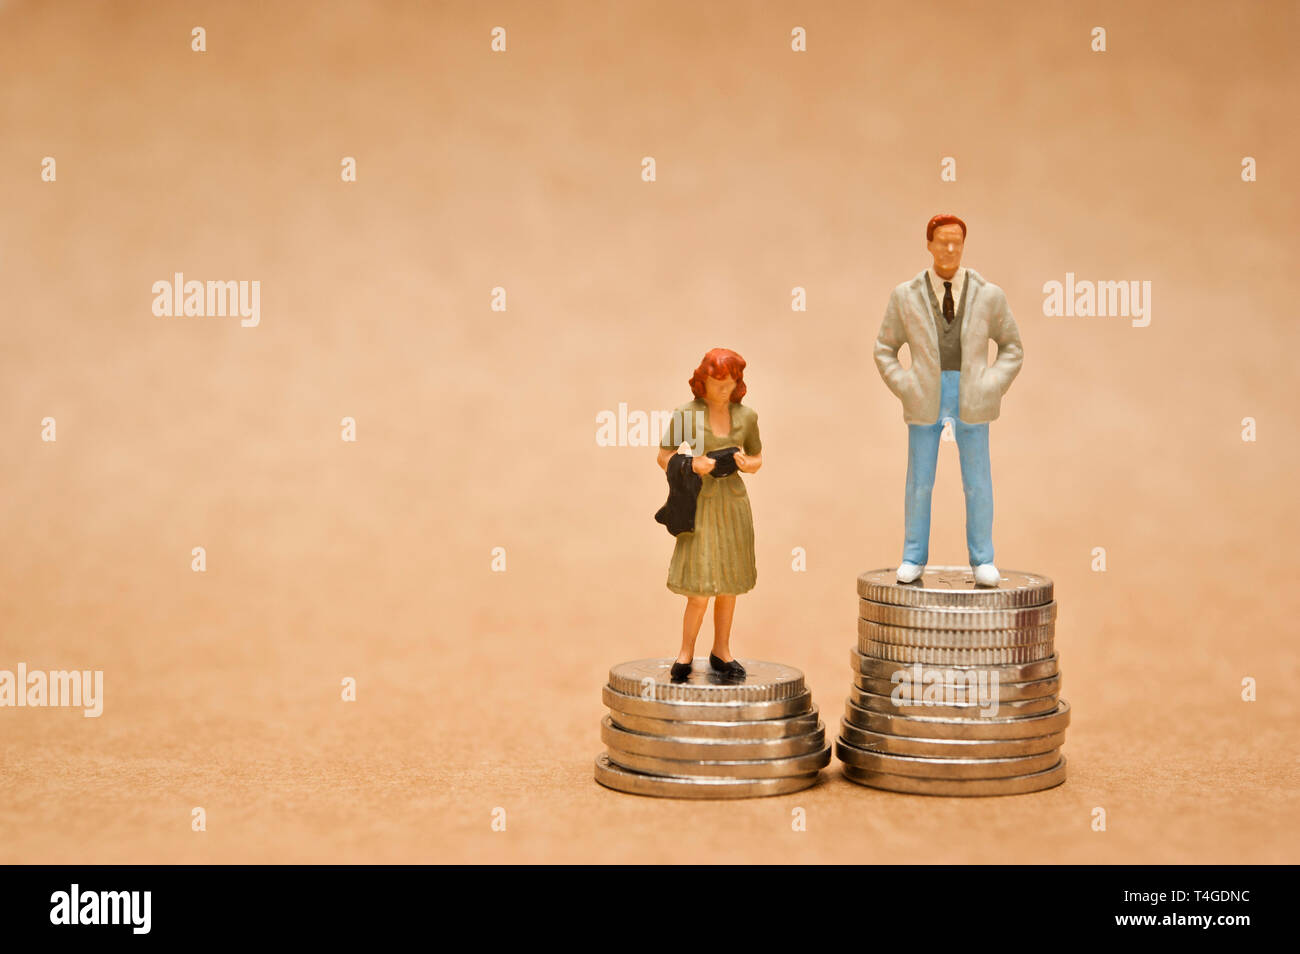 man and woman figurine standing on coins, gender pay gap concept Stock Photo